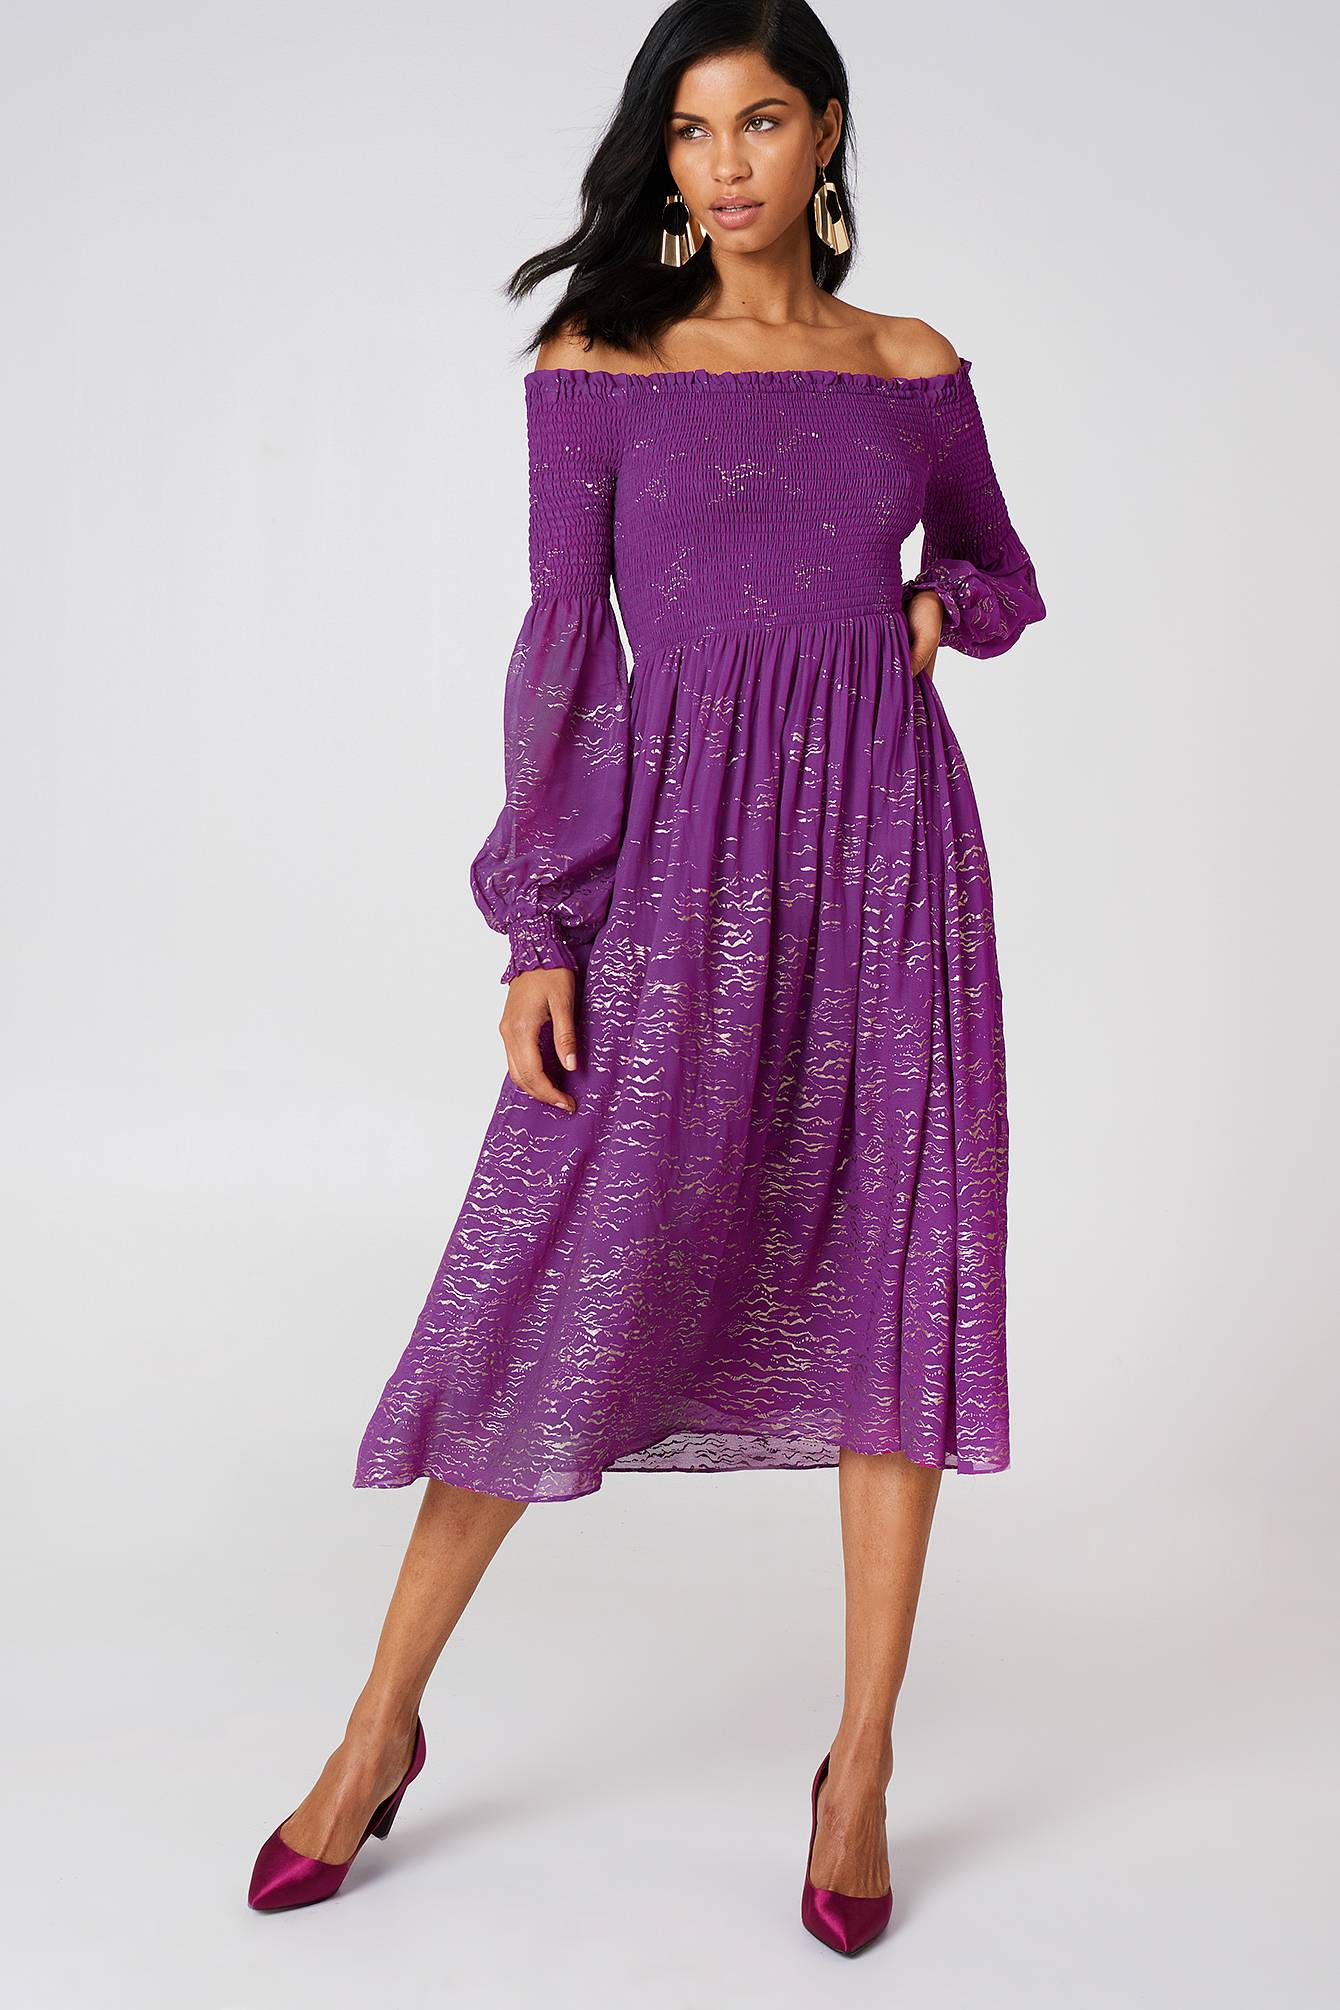 Free People Foiled Smock Midi Dress - Purple